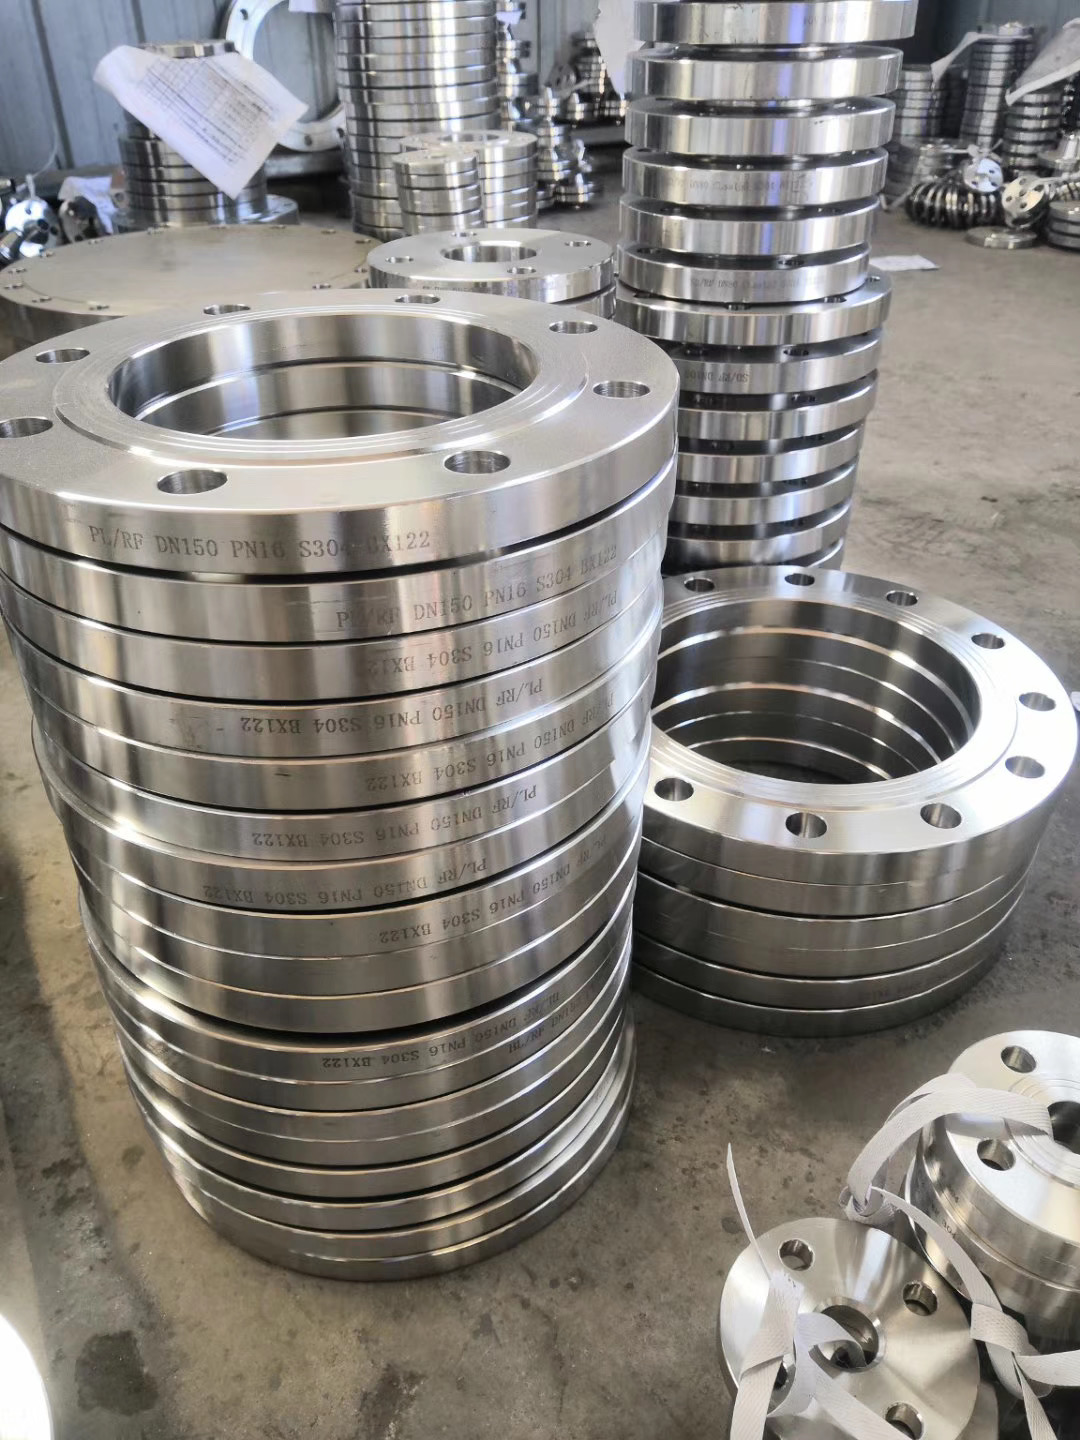 Stainless Steel Flange Flange Flange Forged Stainless Steel Flange